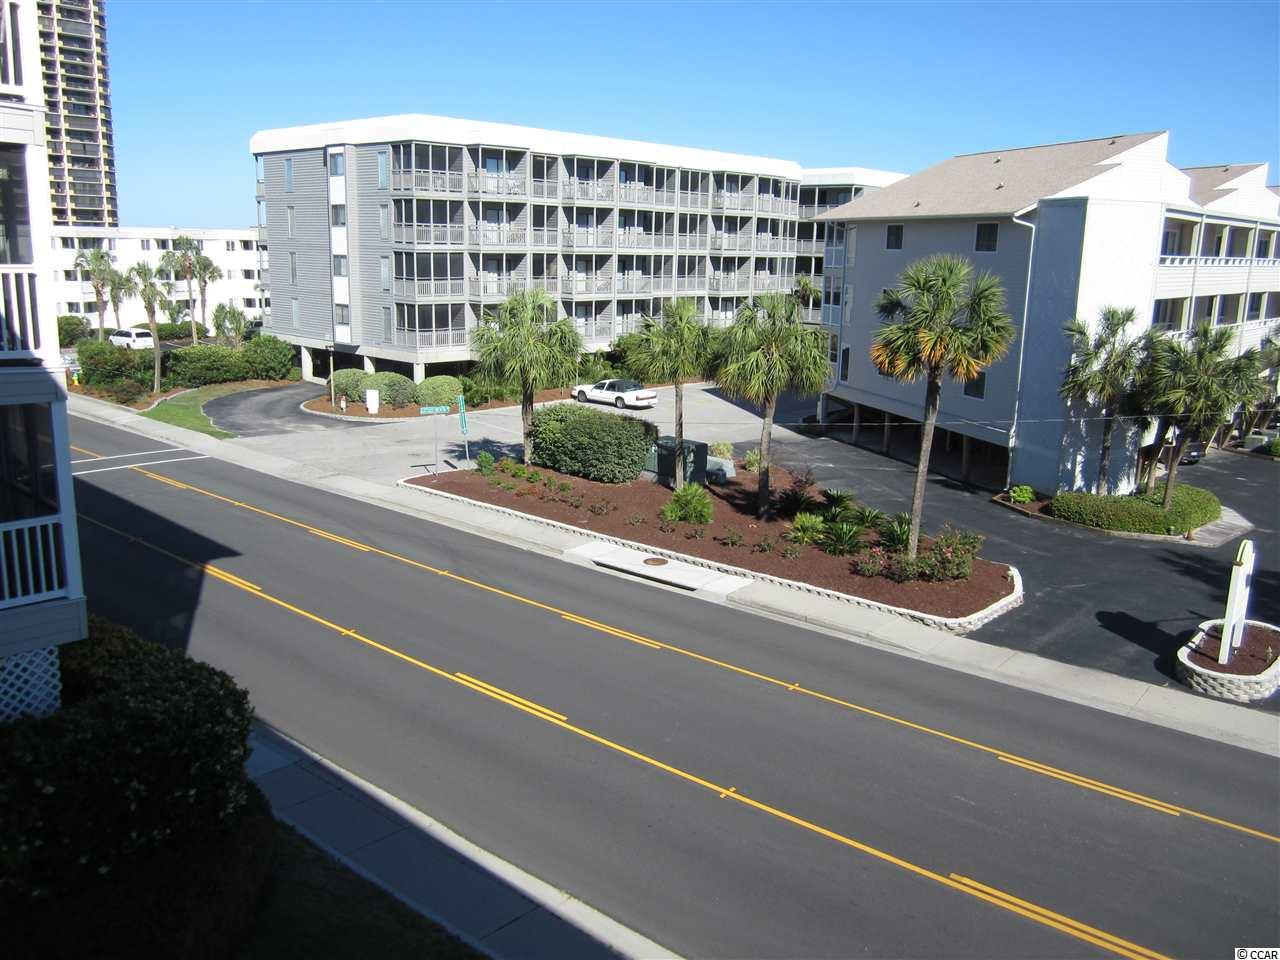 Condo For Sale At Pelicans Watch Shore Drive In Myrtle Beach South Carolina Unit Listing Mls